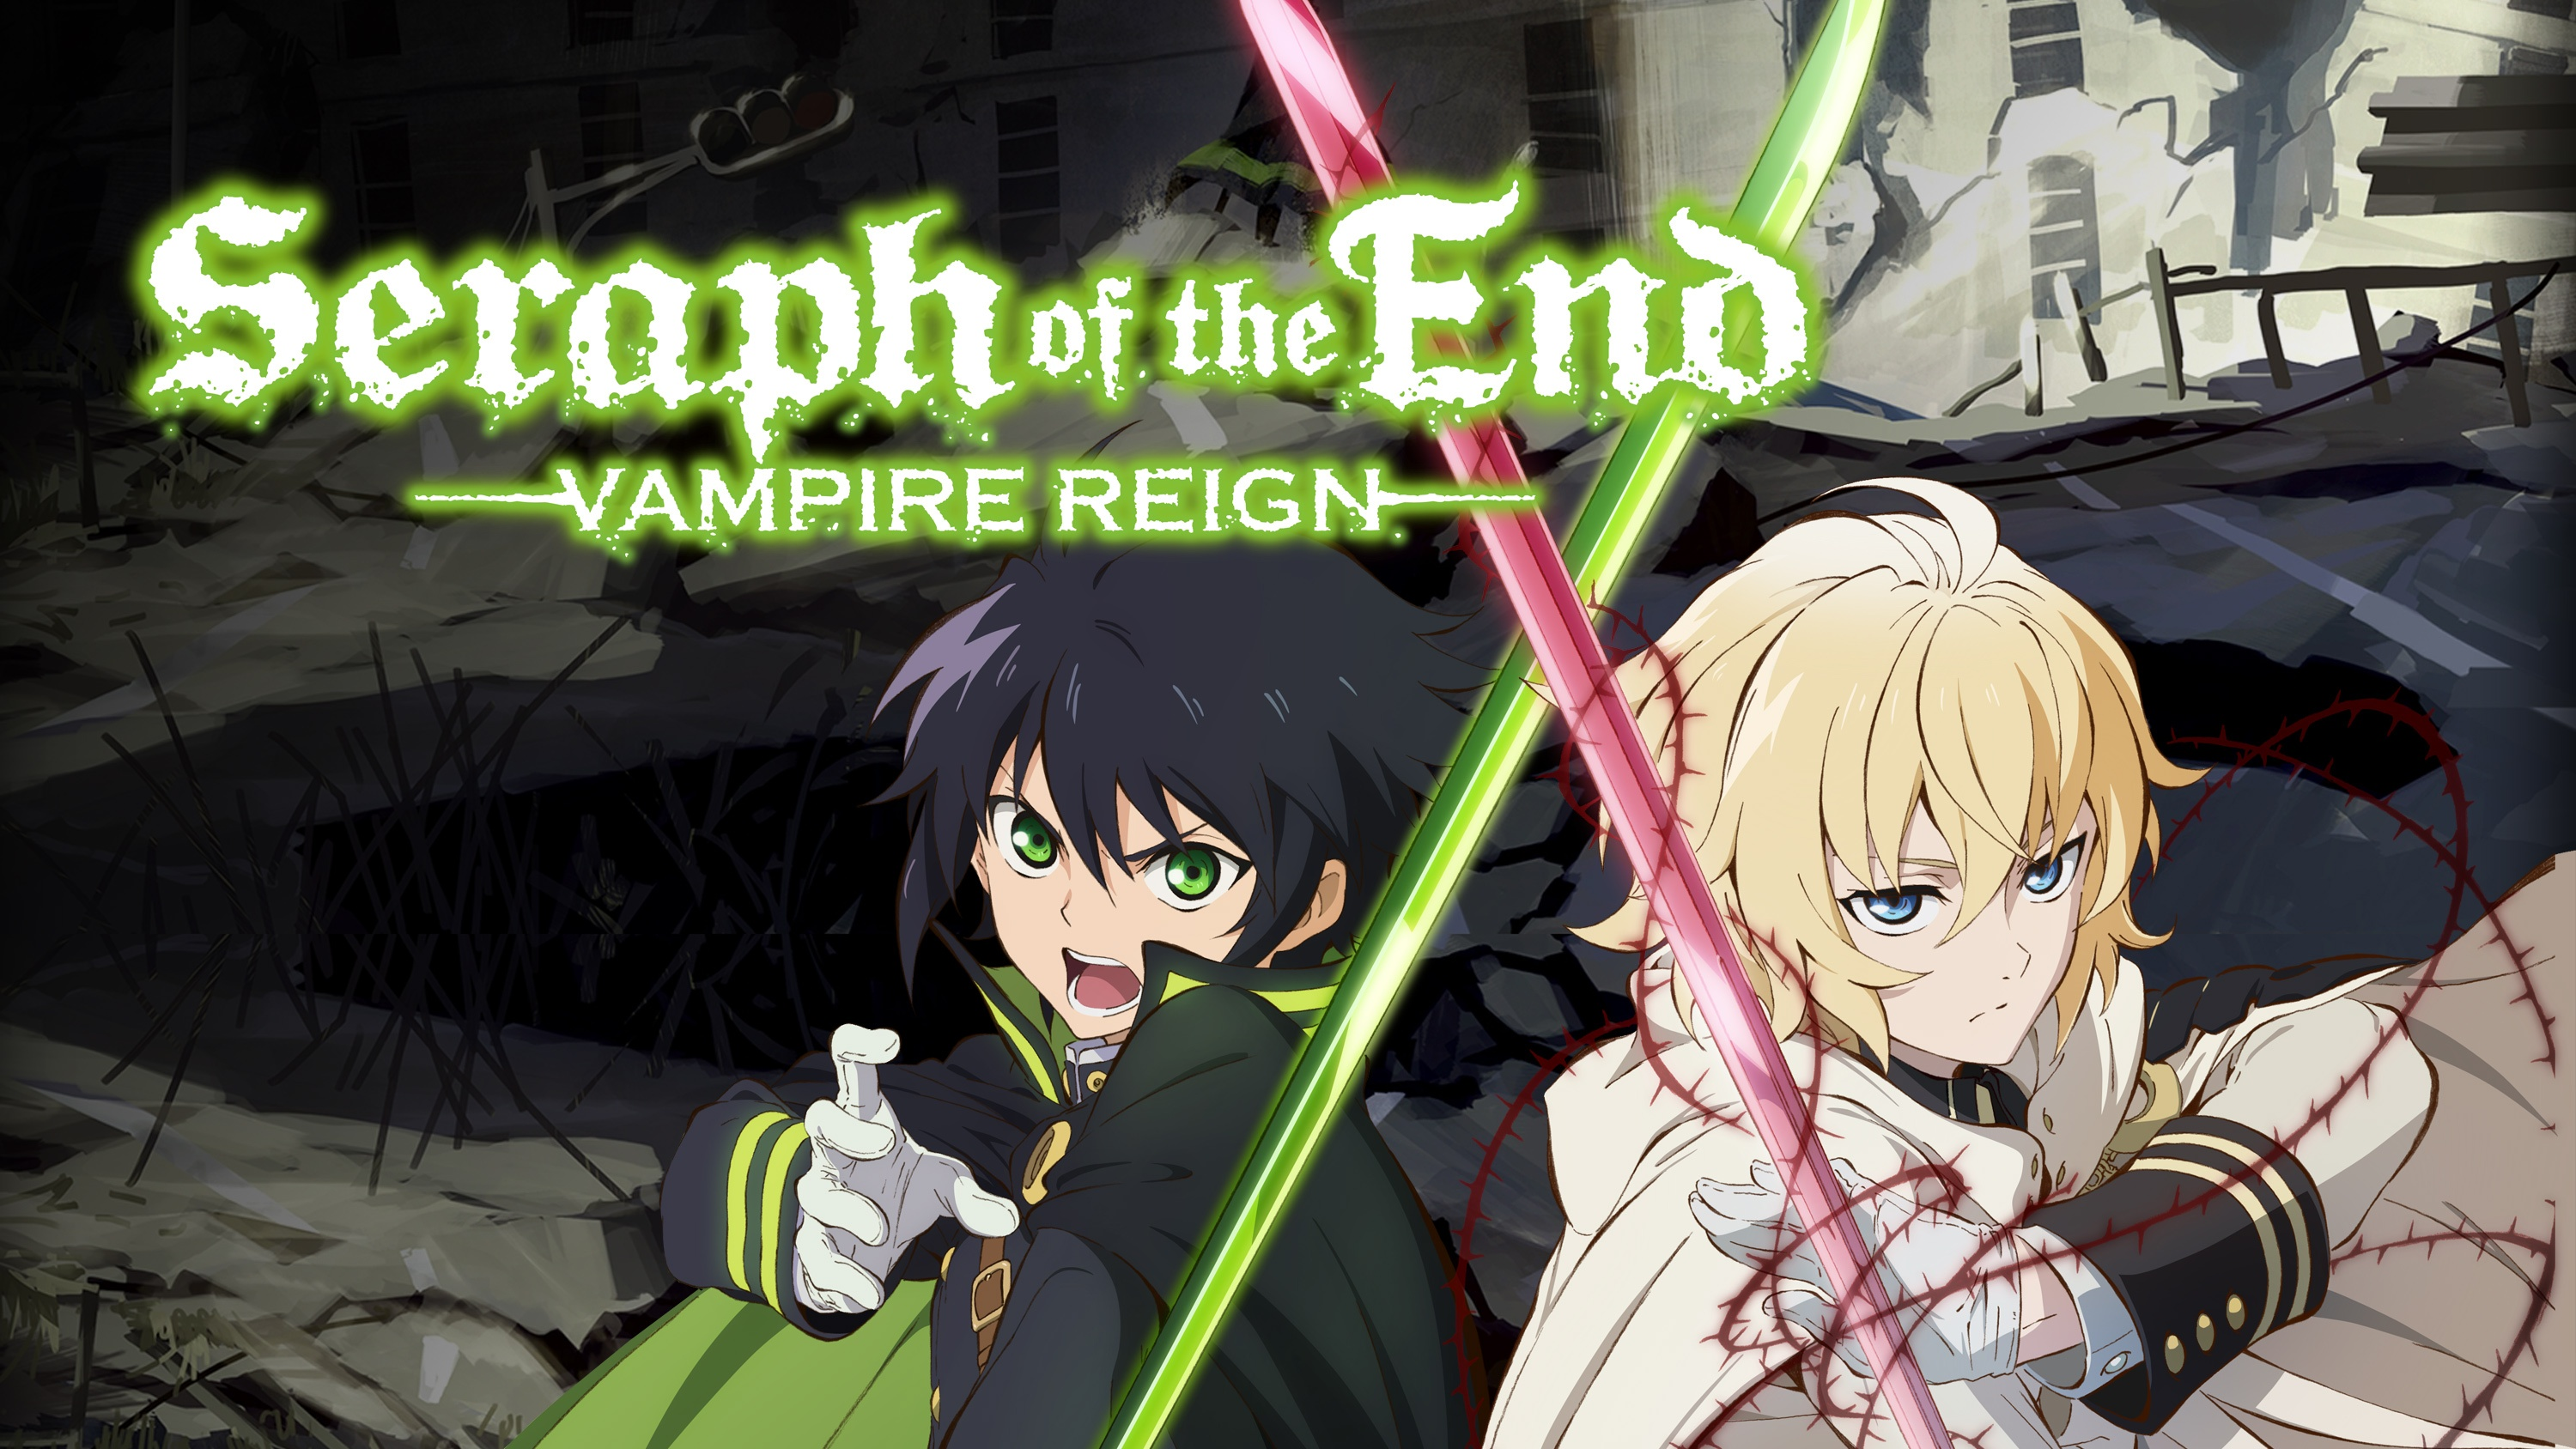 A young man named yūichirō hyakuya joins a vampire extermination unit to avenge the deaths of his orphaned family and reclaim his best friend mikaela